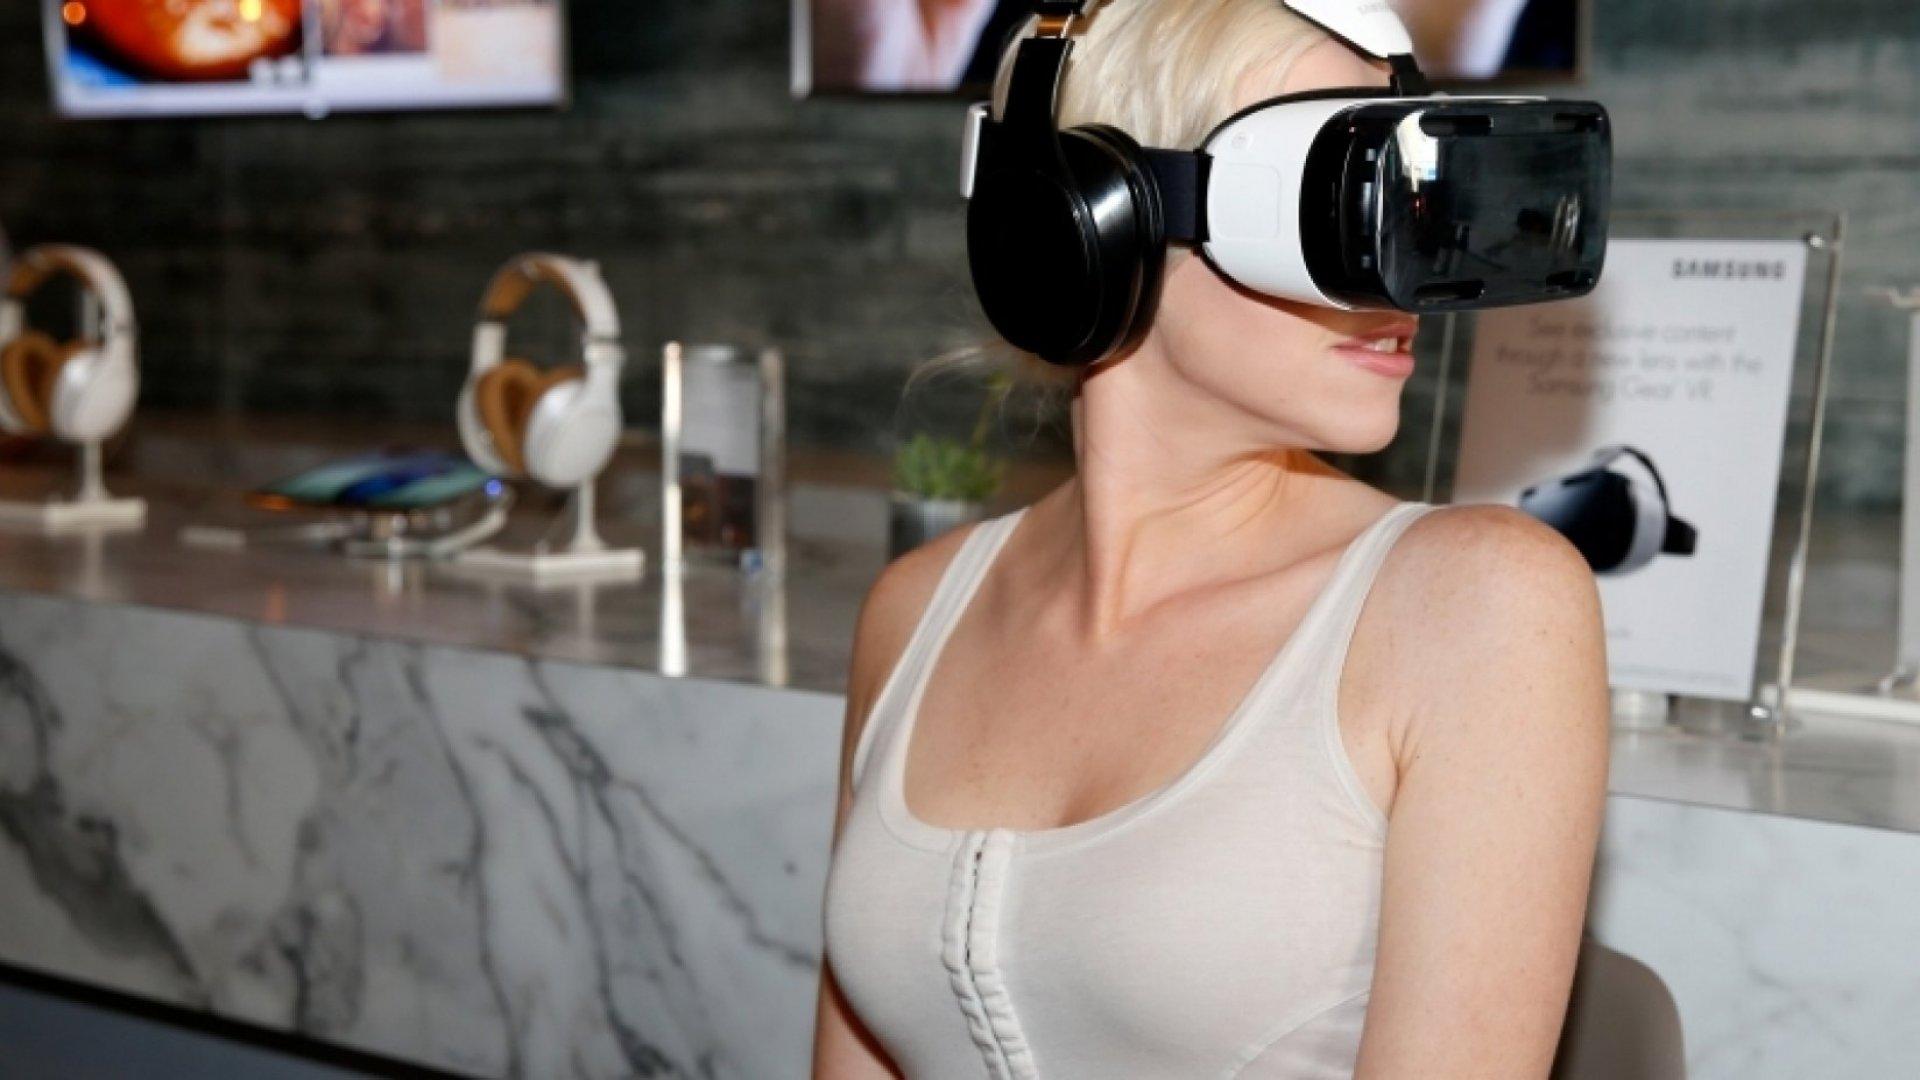 6 Incredibly Thought-Provoking Tech Innovations From SxSW 2015